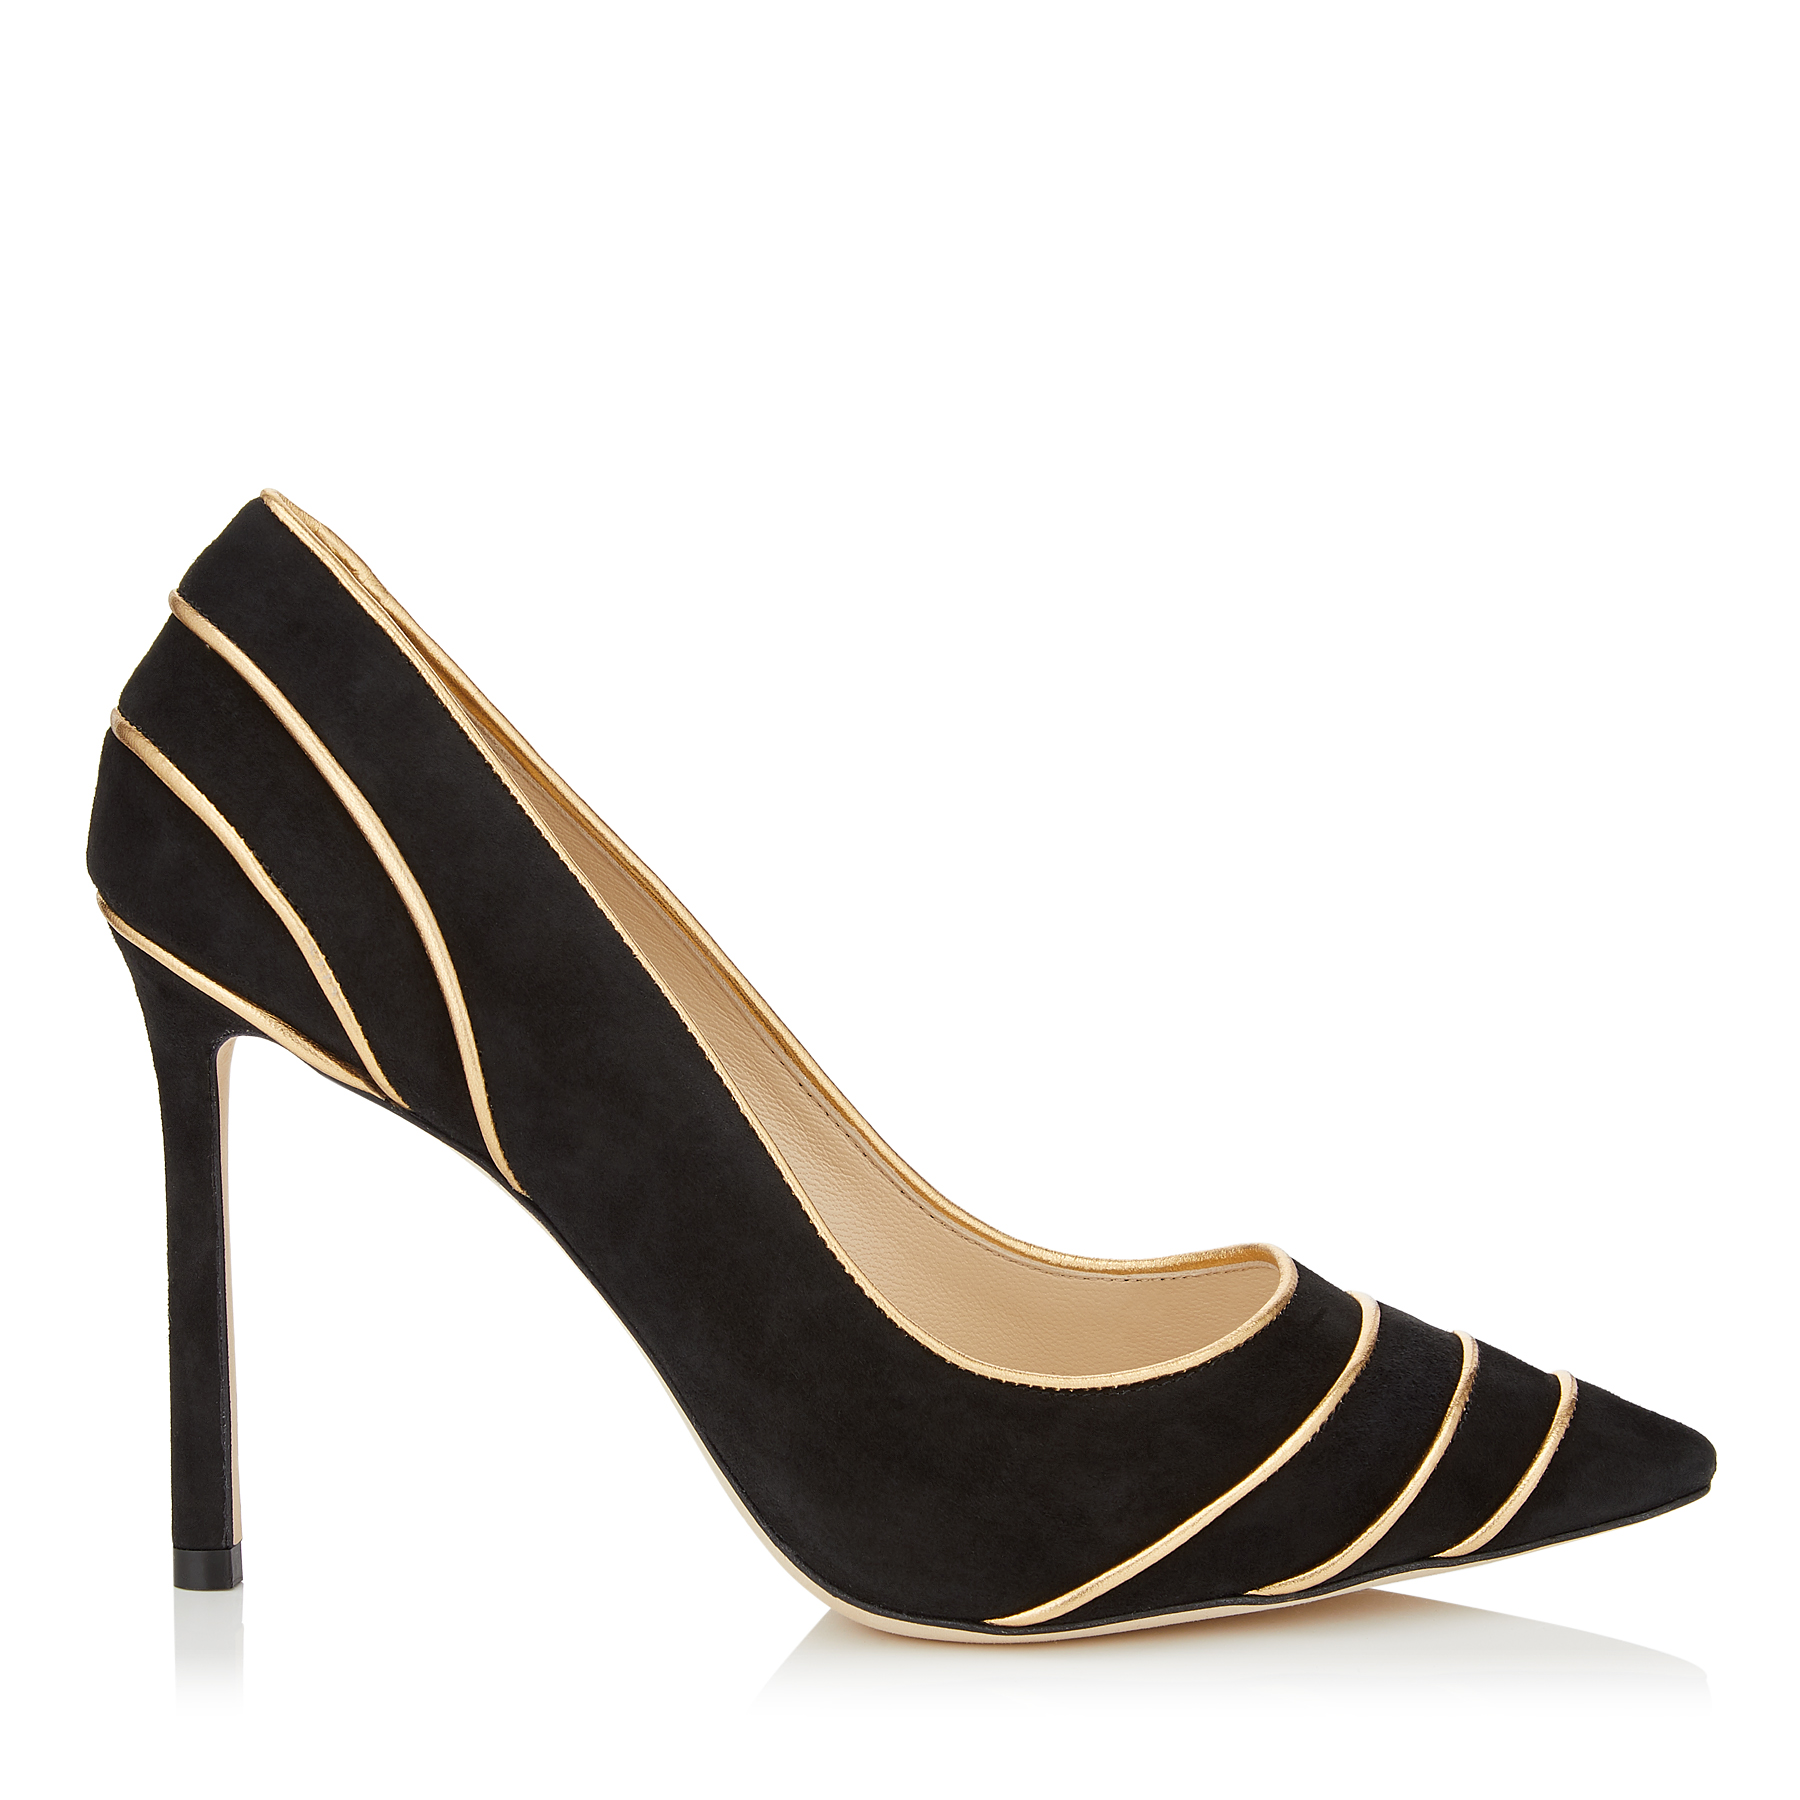 ROMY 100 Black Suede Pointy Toe Pumps with Gold Metallic Nappa Leather Piping by Jimmy Choo